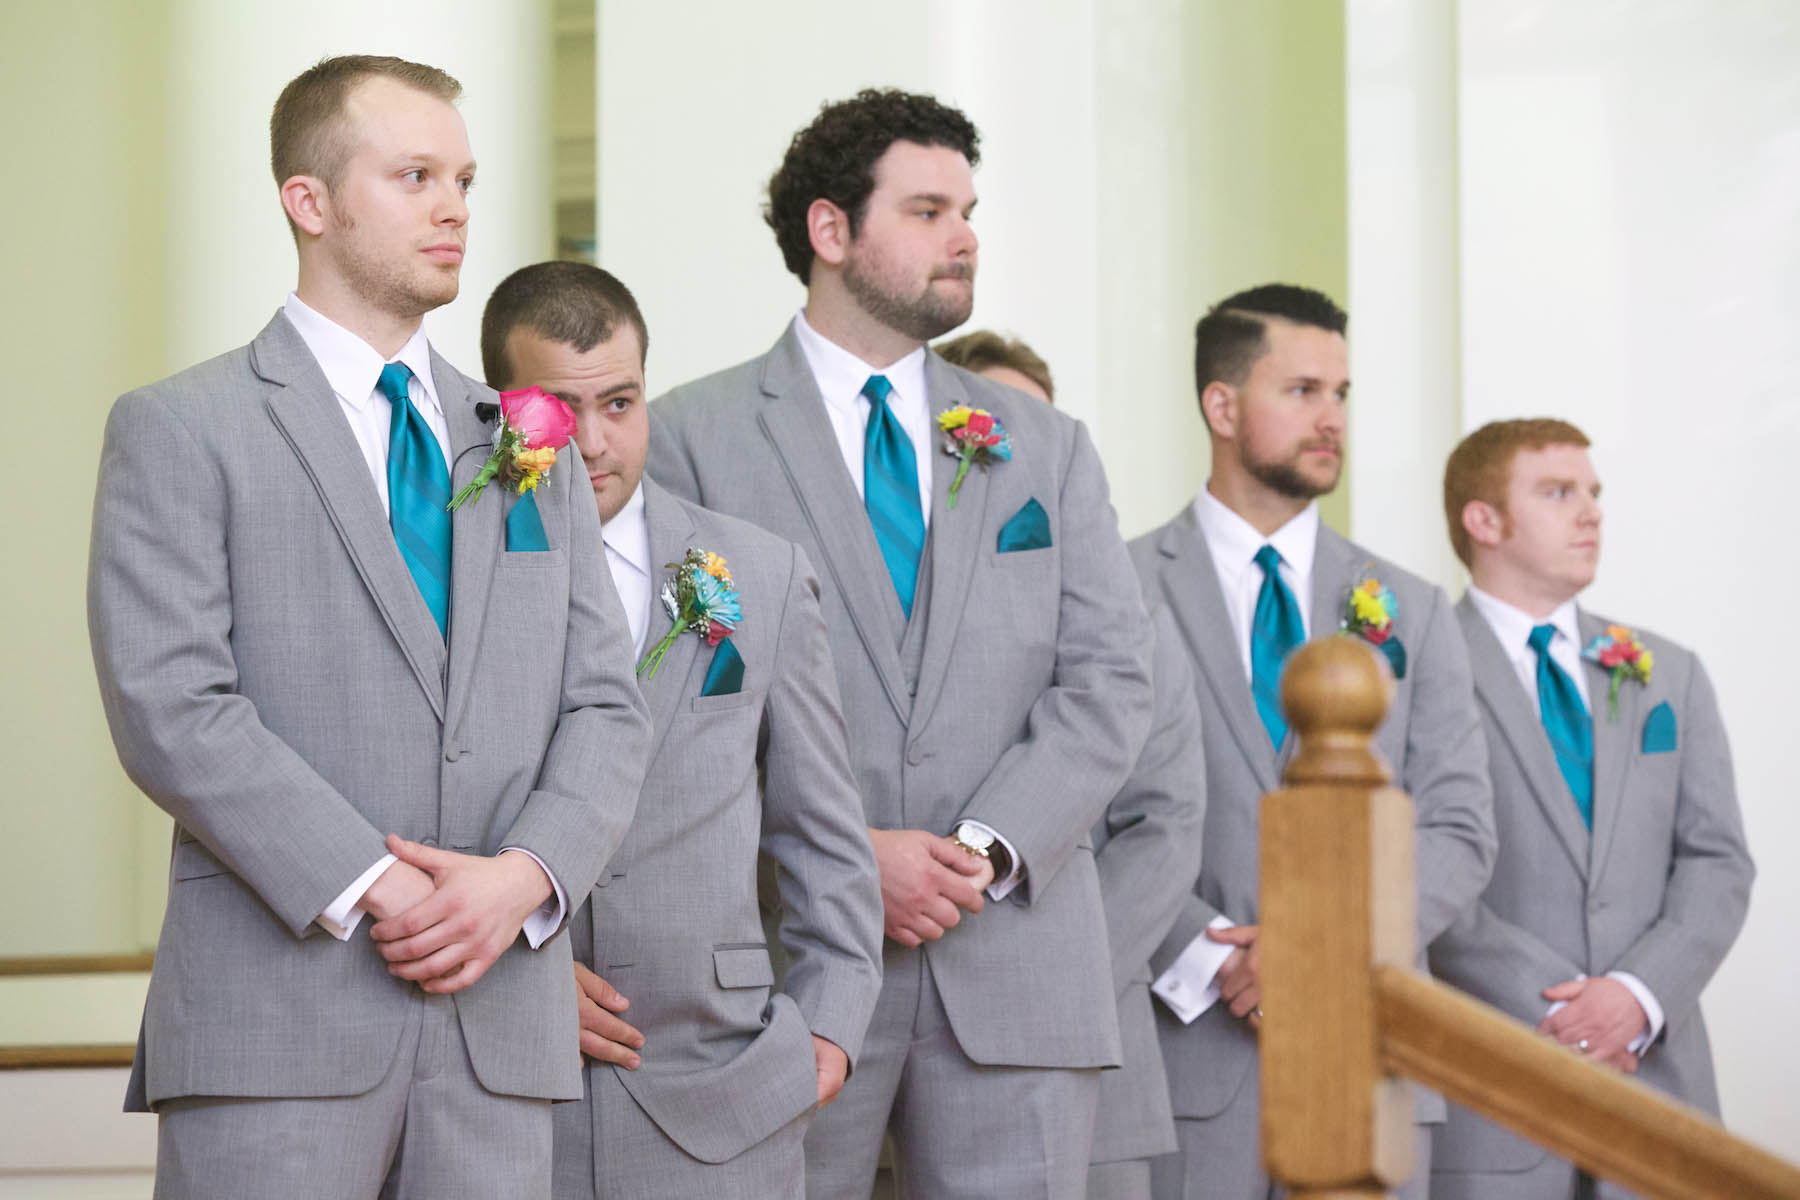 Ben and his groomsmen anticipate Alissa coming down the aisle. Wedding pictures by Tiffany & Steve of Warmowski Photography.